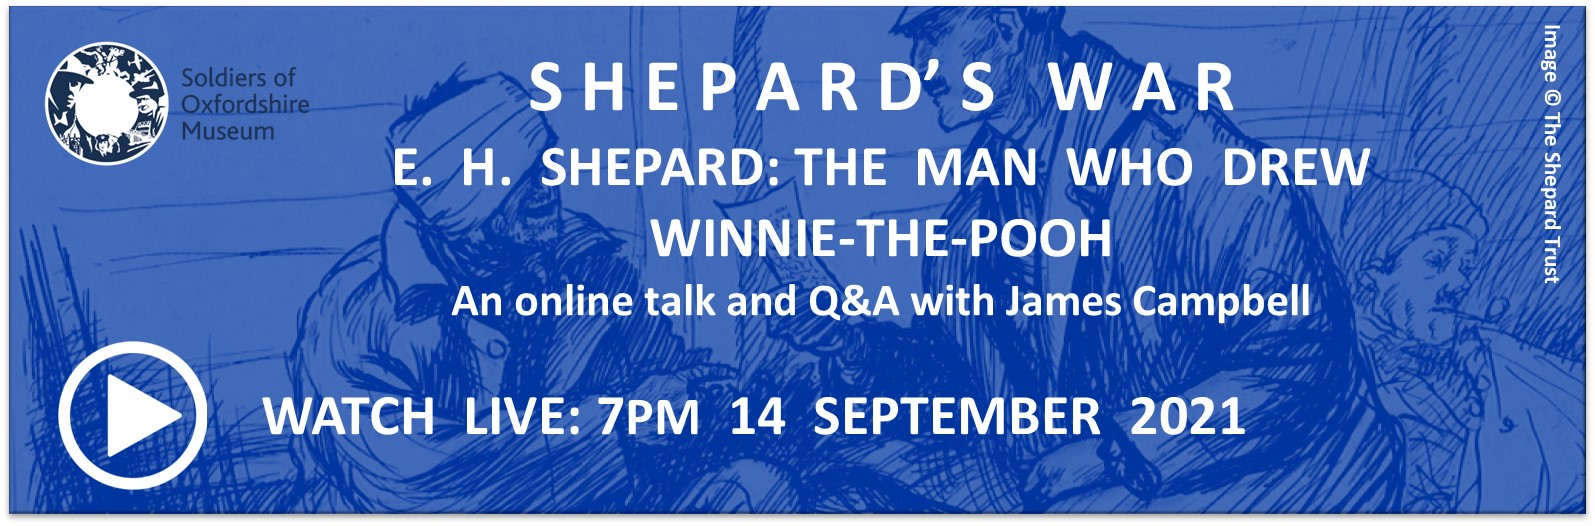 Watch the Online Talk 'Shepard's War: E.H. Shepard - The Man Who Drew Winnie-the-Pooh with James Campbell (Live from 14th September 2021)